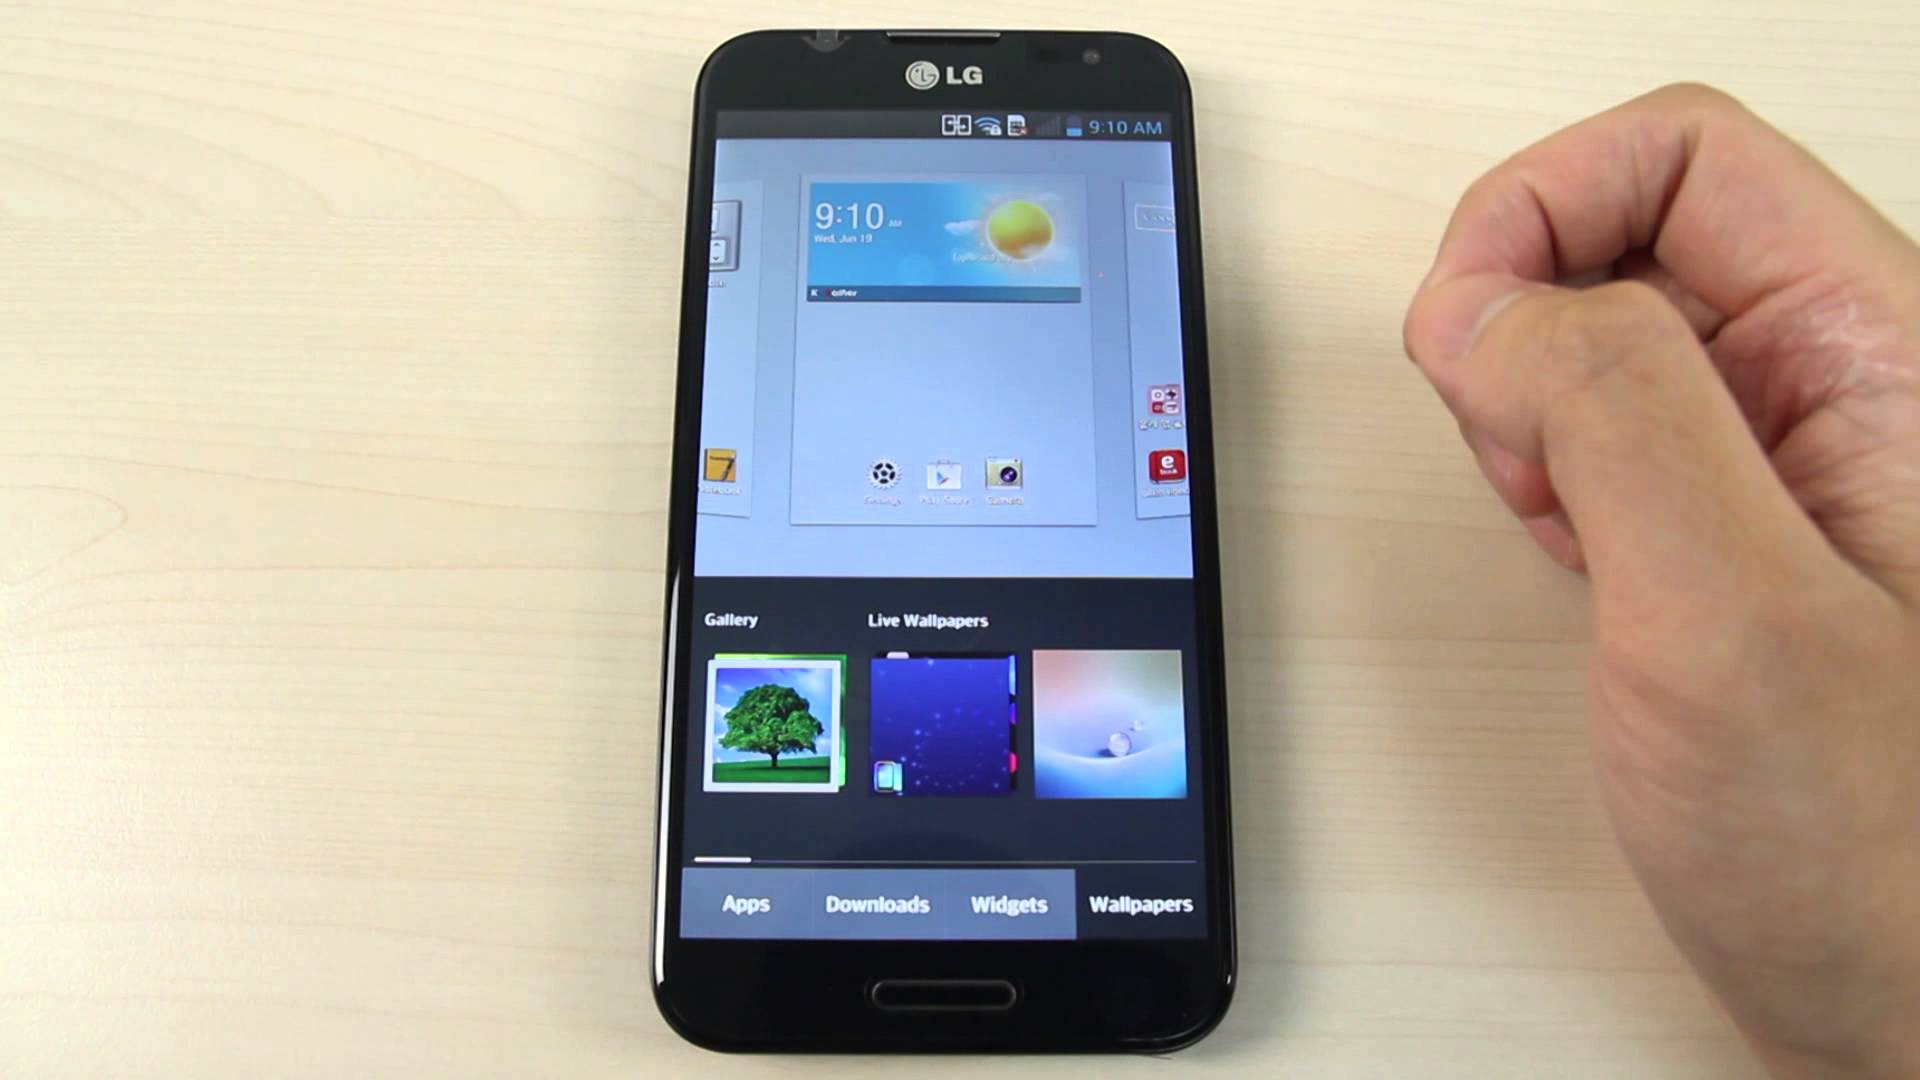 How To Change Wallpaper On Lg Phone